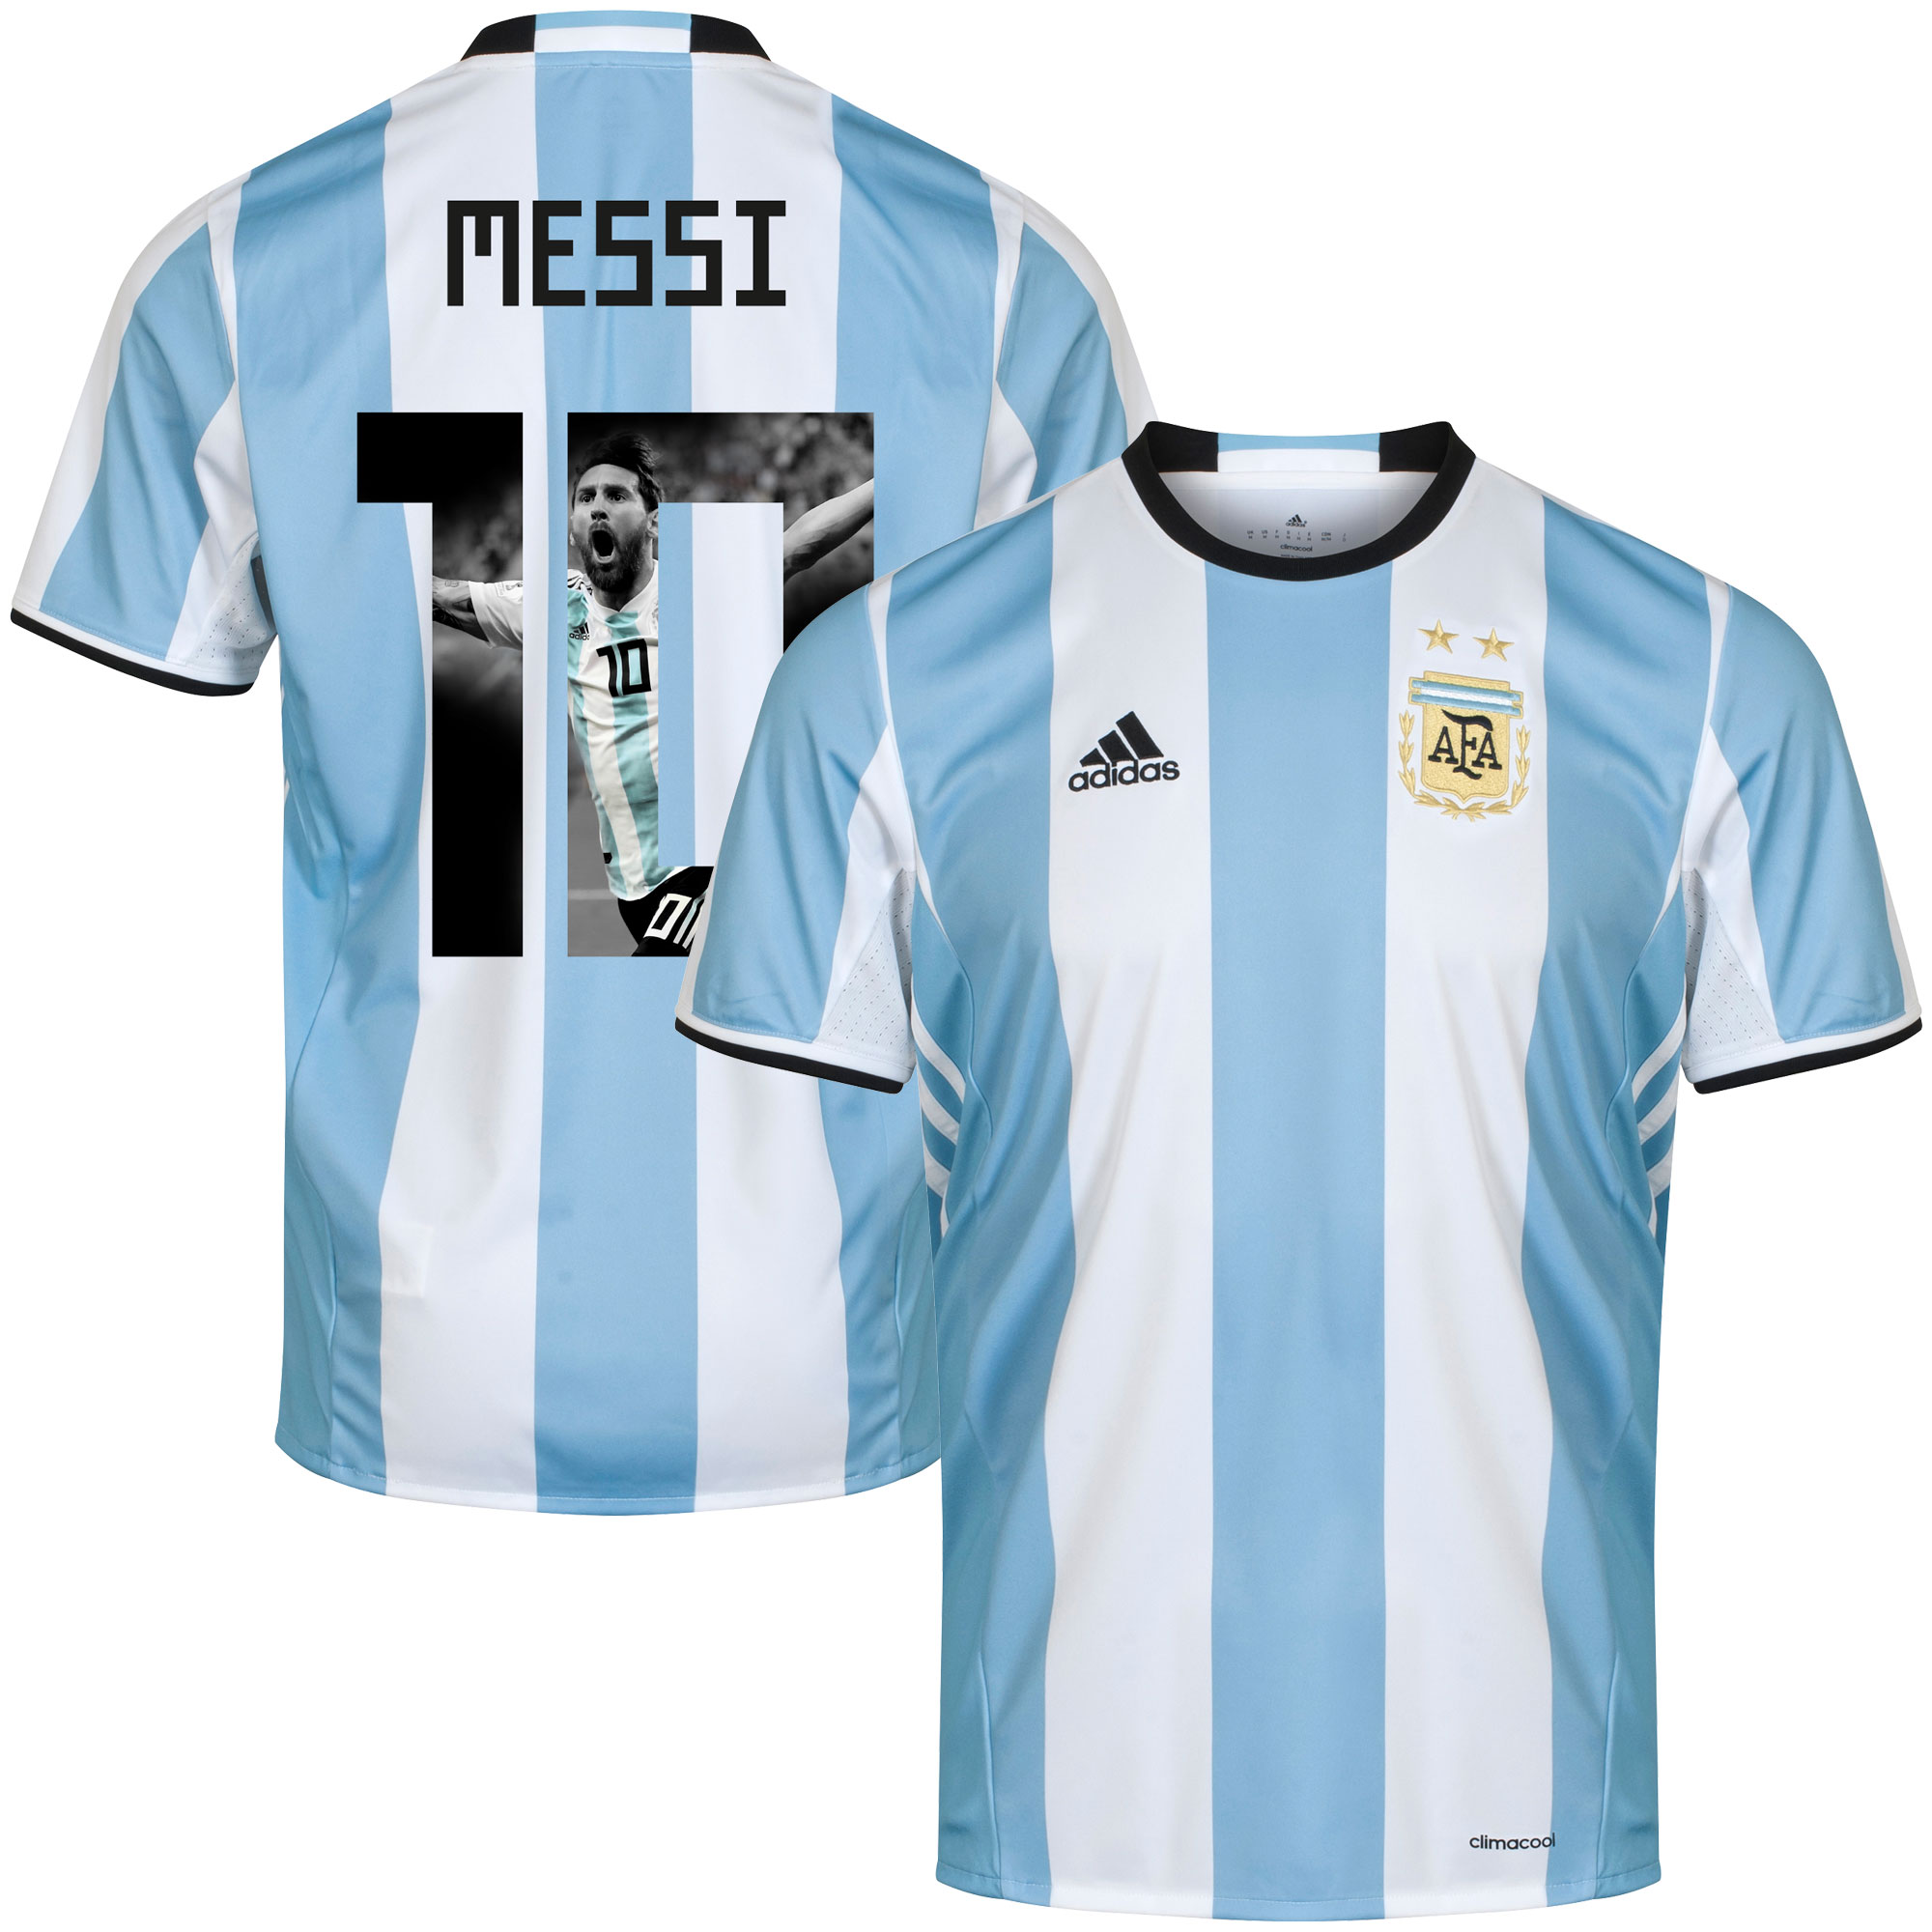 Argentina Home Messi 10 Shirt 2016 2017 (Gallery Style) - 50